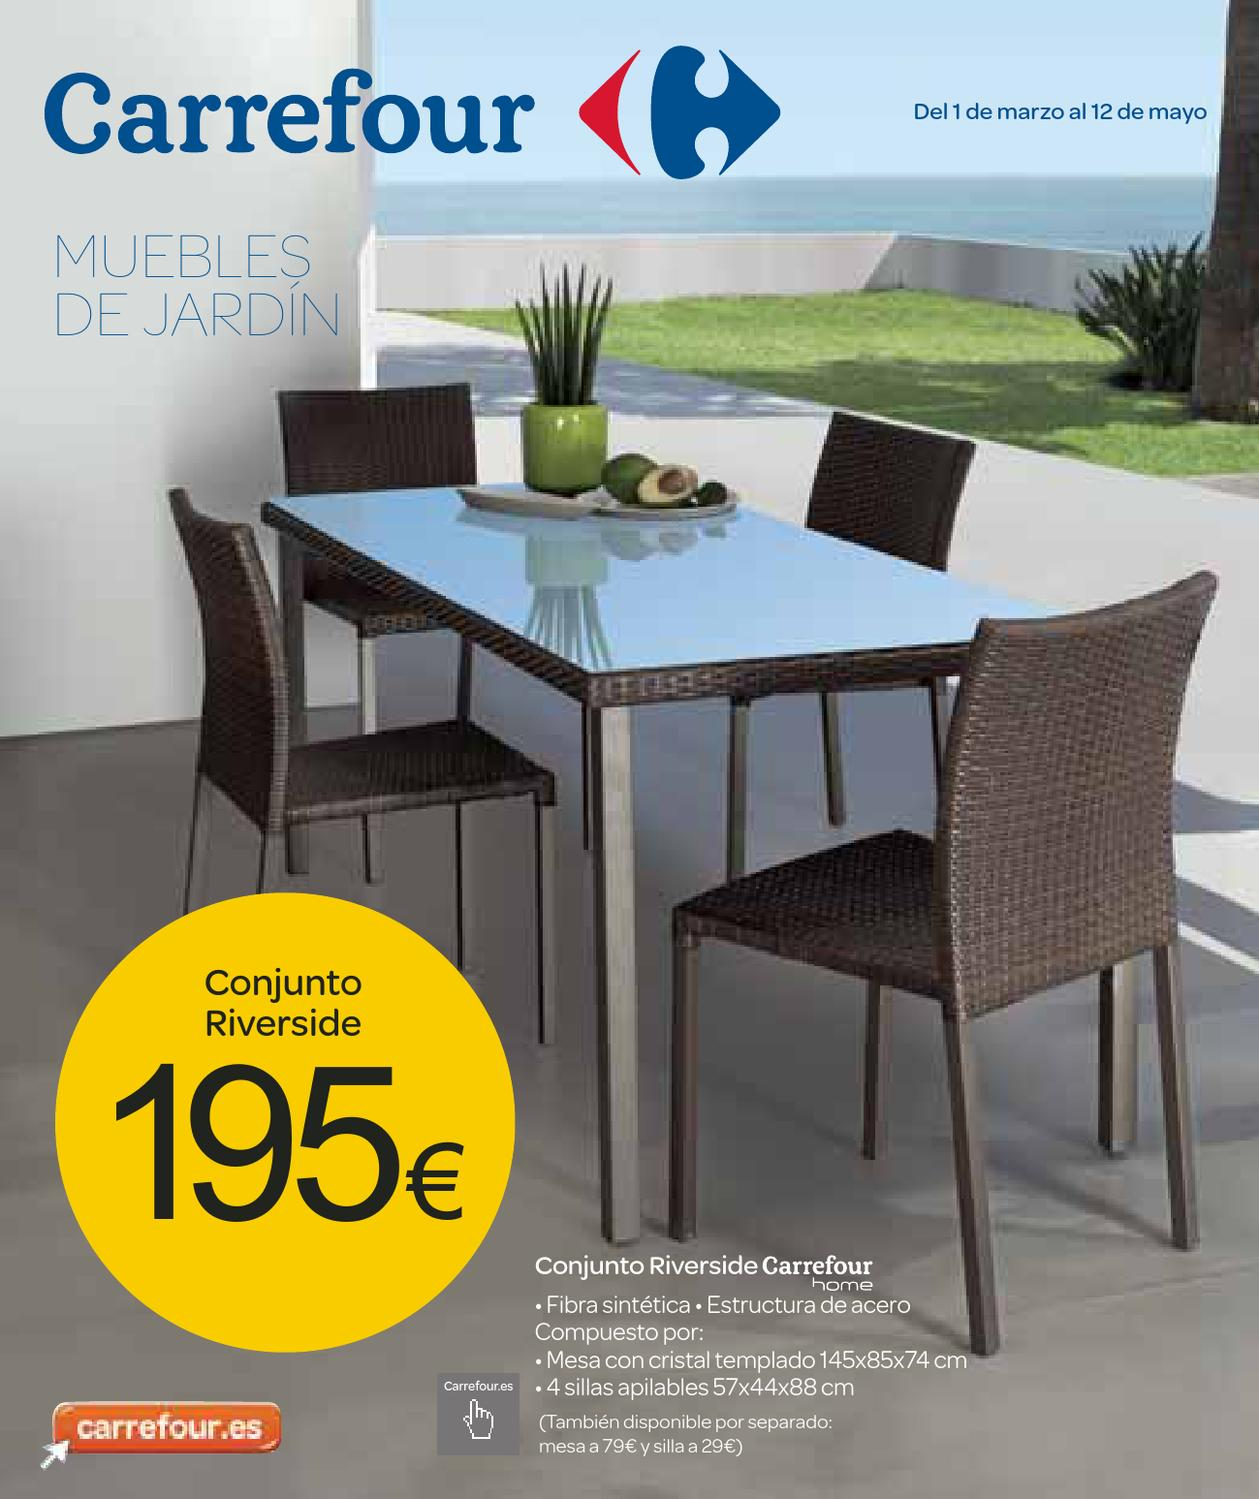 Issuu catalogo de muebles de jardin carrefour by for Catalogo de flores de jardin